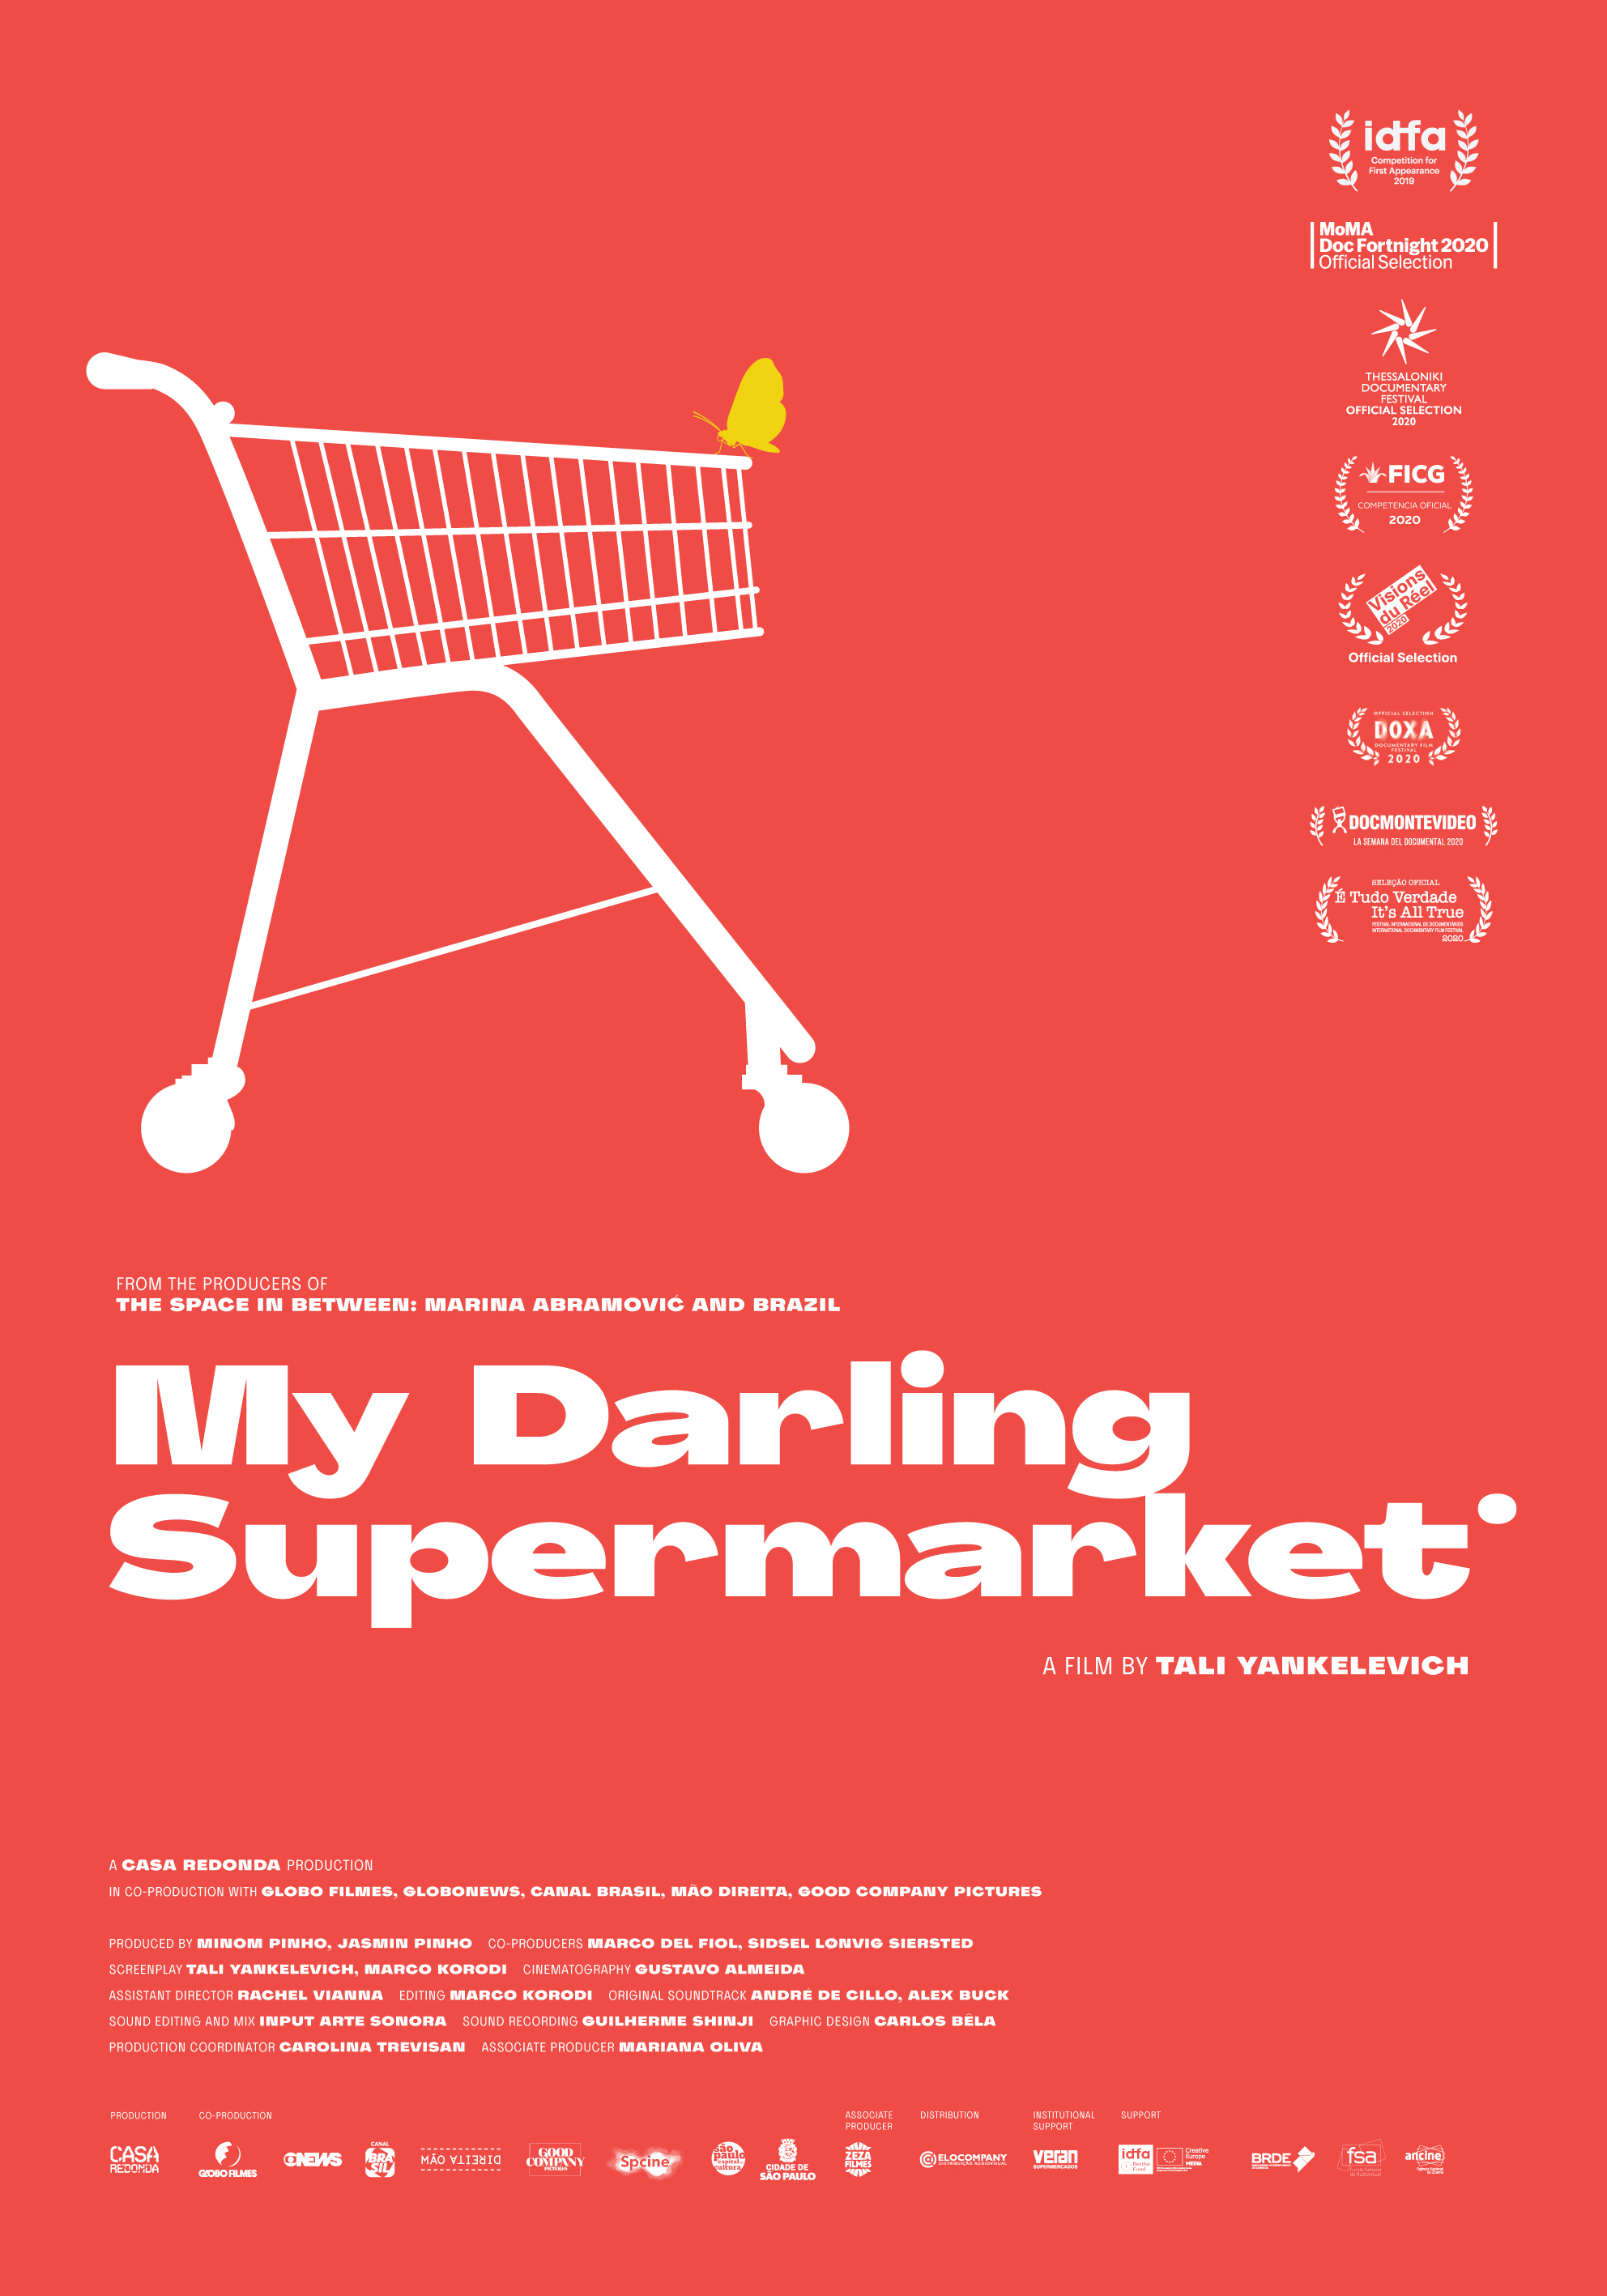 My Darling Supermarket